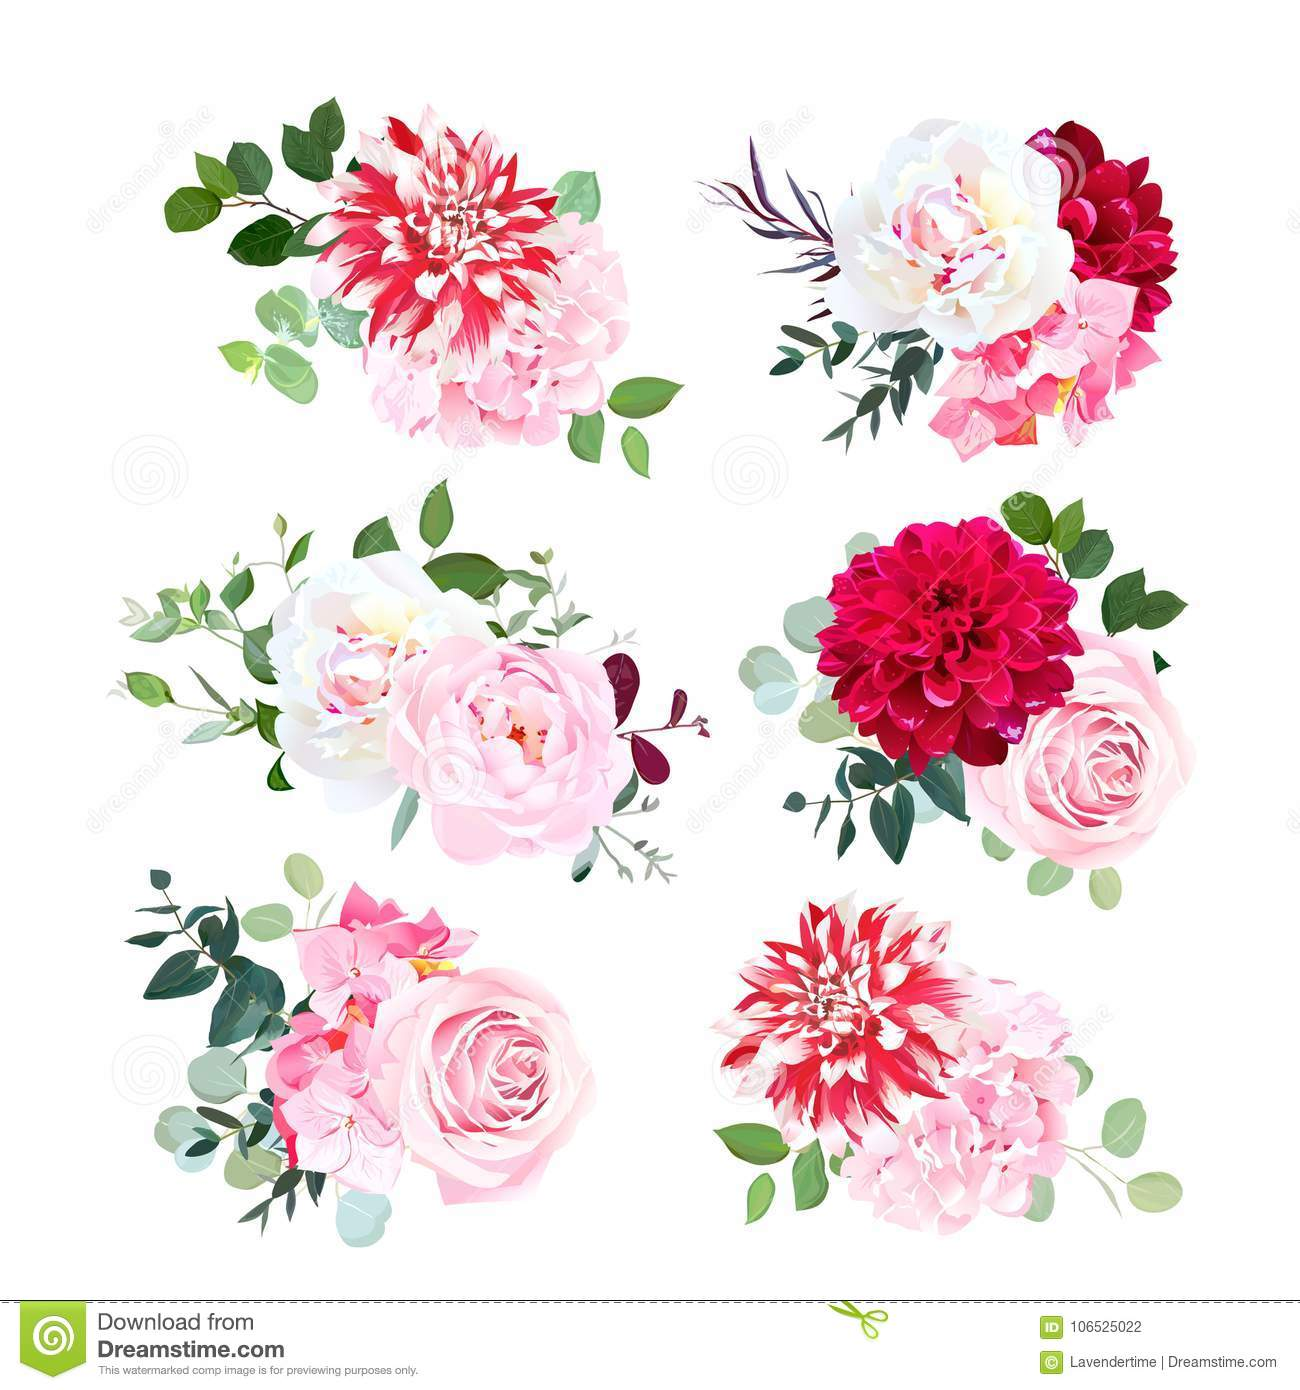 4c91a0daa1261 Small summer bouquets of pink rose, white peony, red dahlia, hydrangea,  green plants, eucalyptus. Vector design set. Bunch of flowers. All elements  are ...